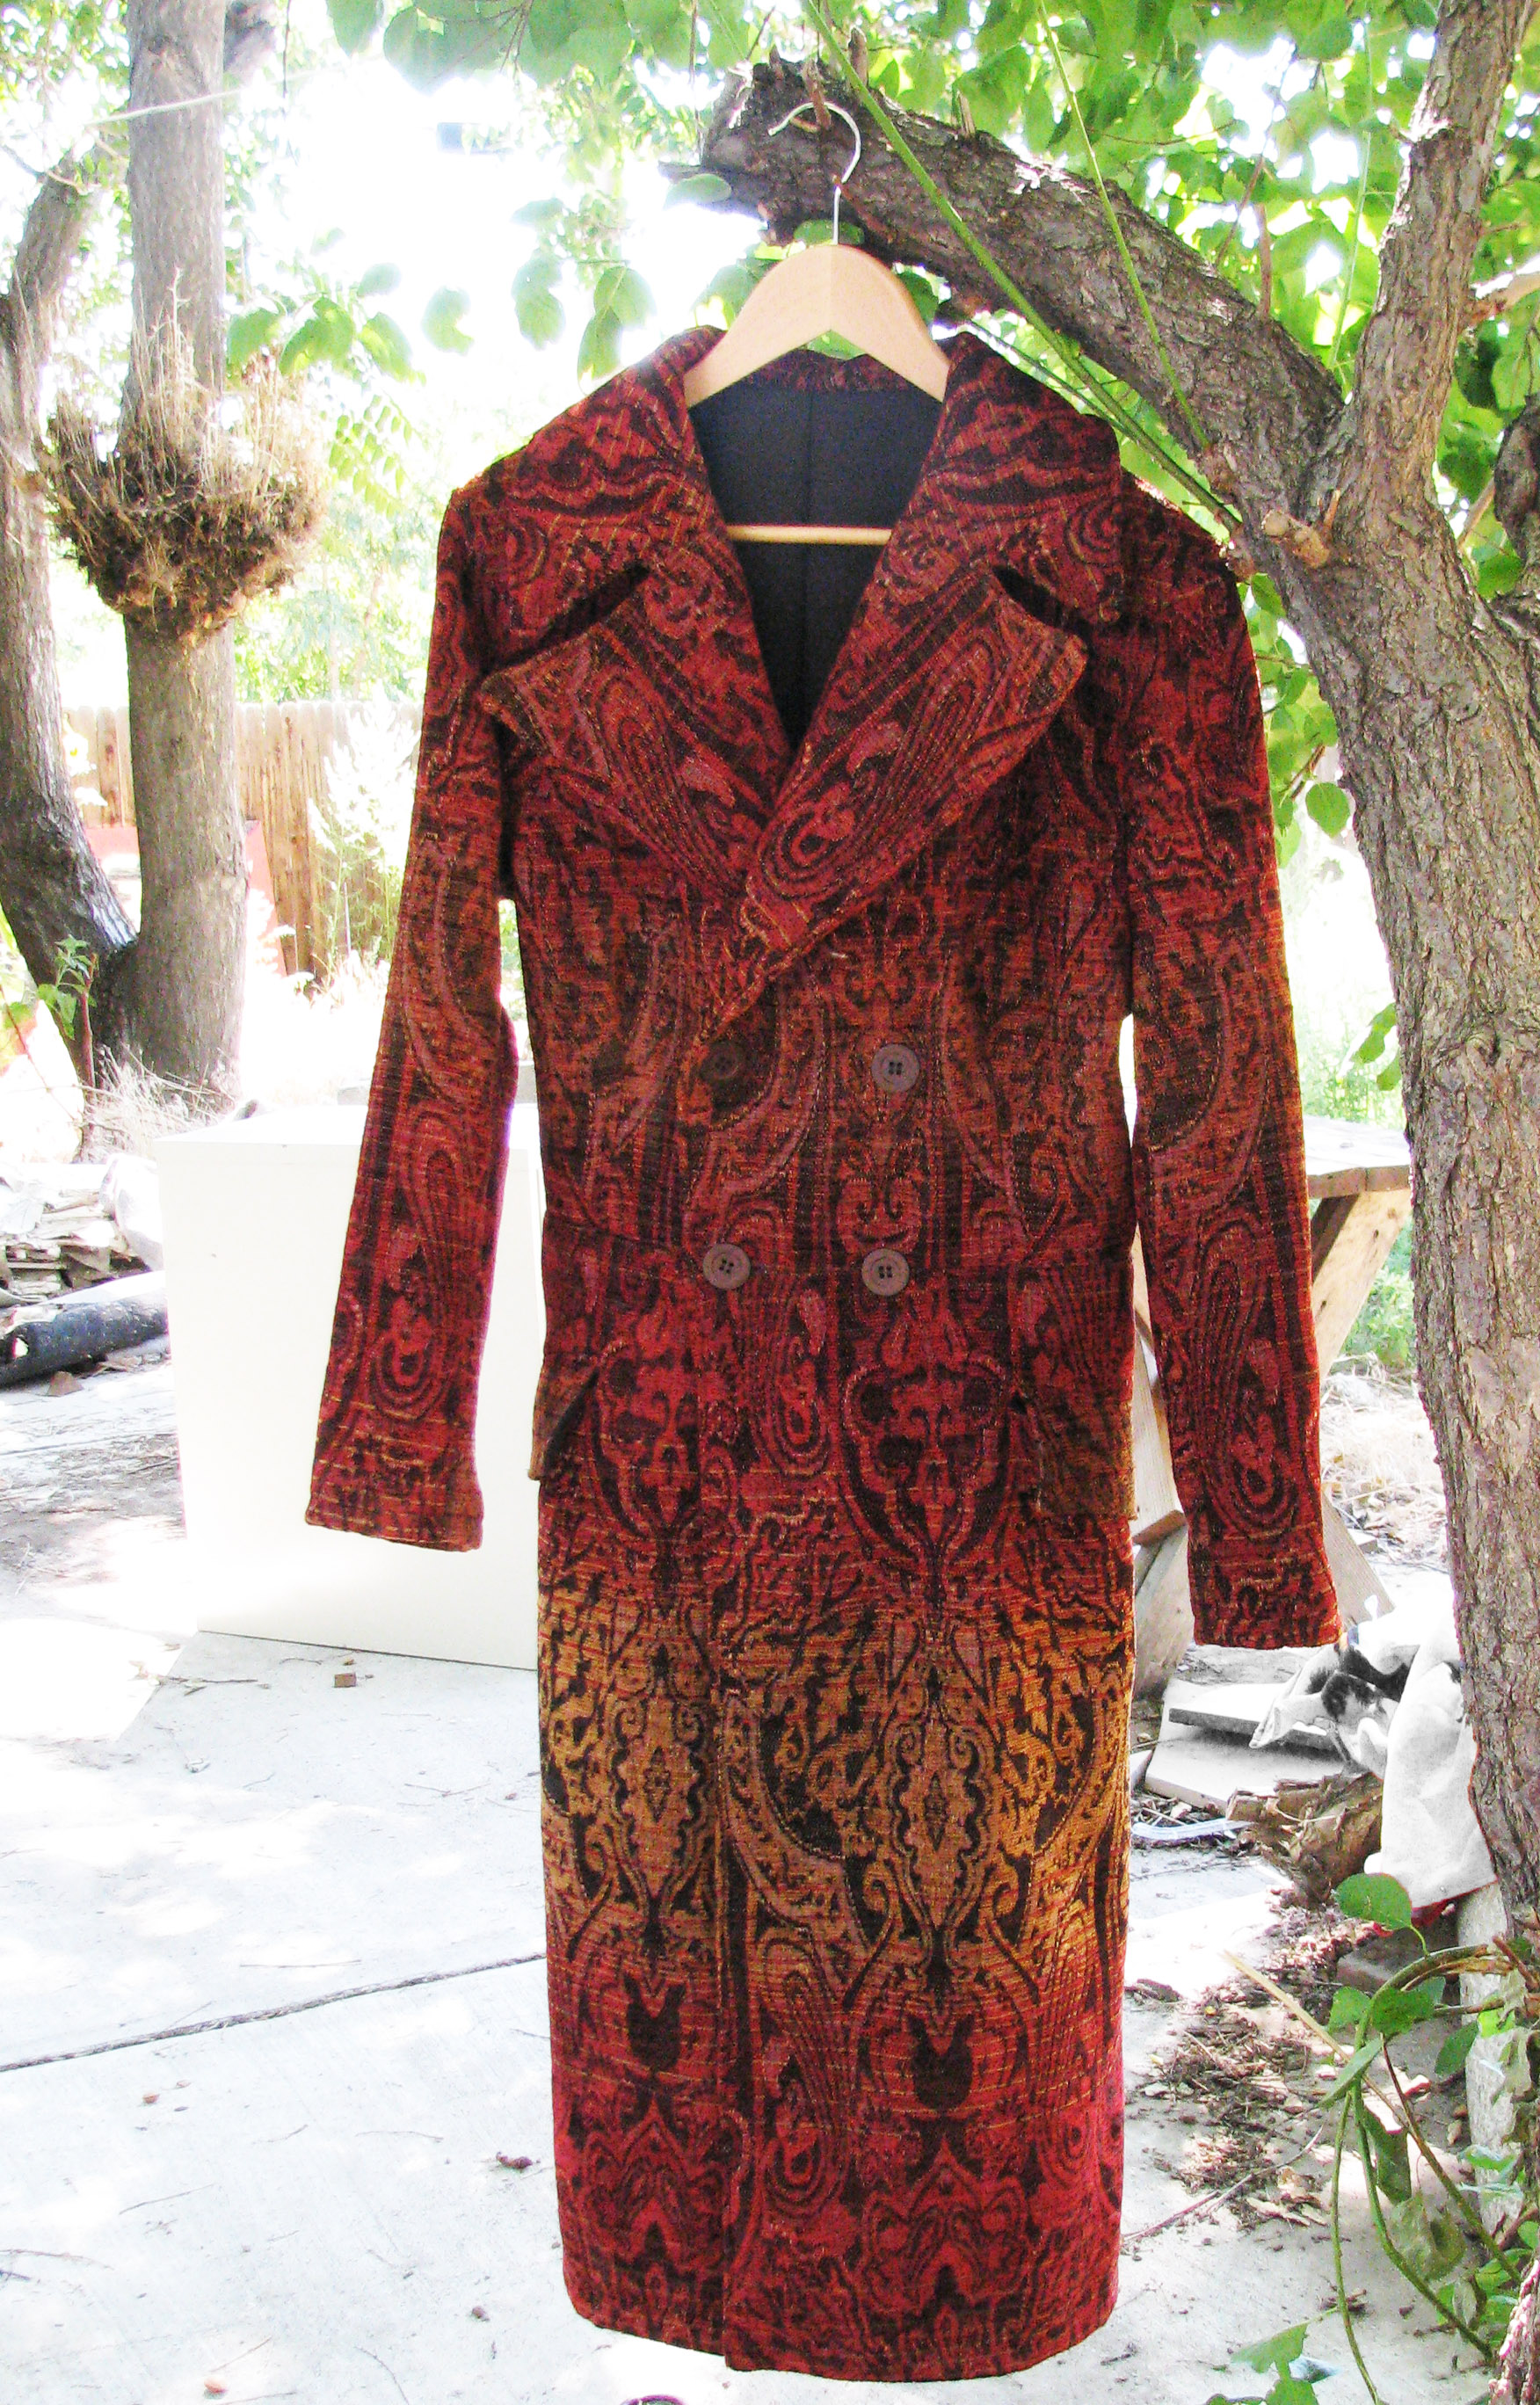 Custom brocade frock coat